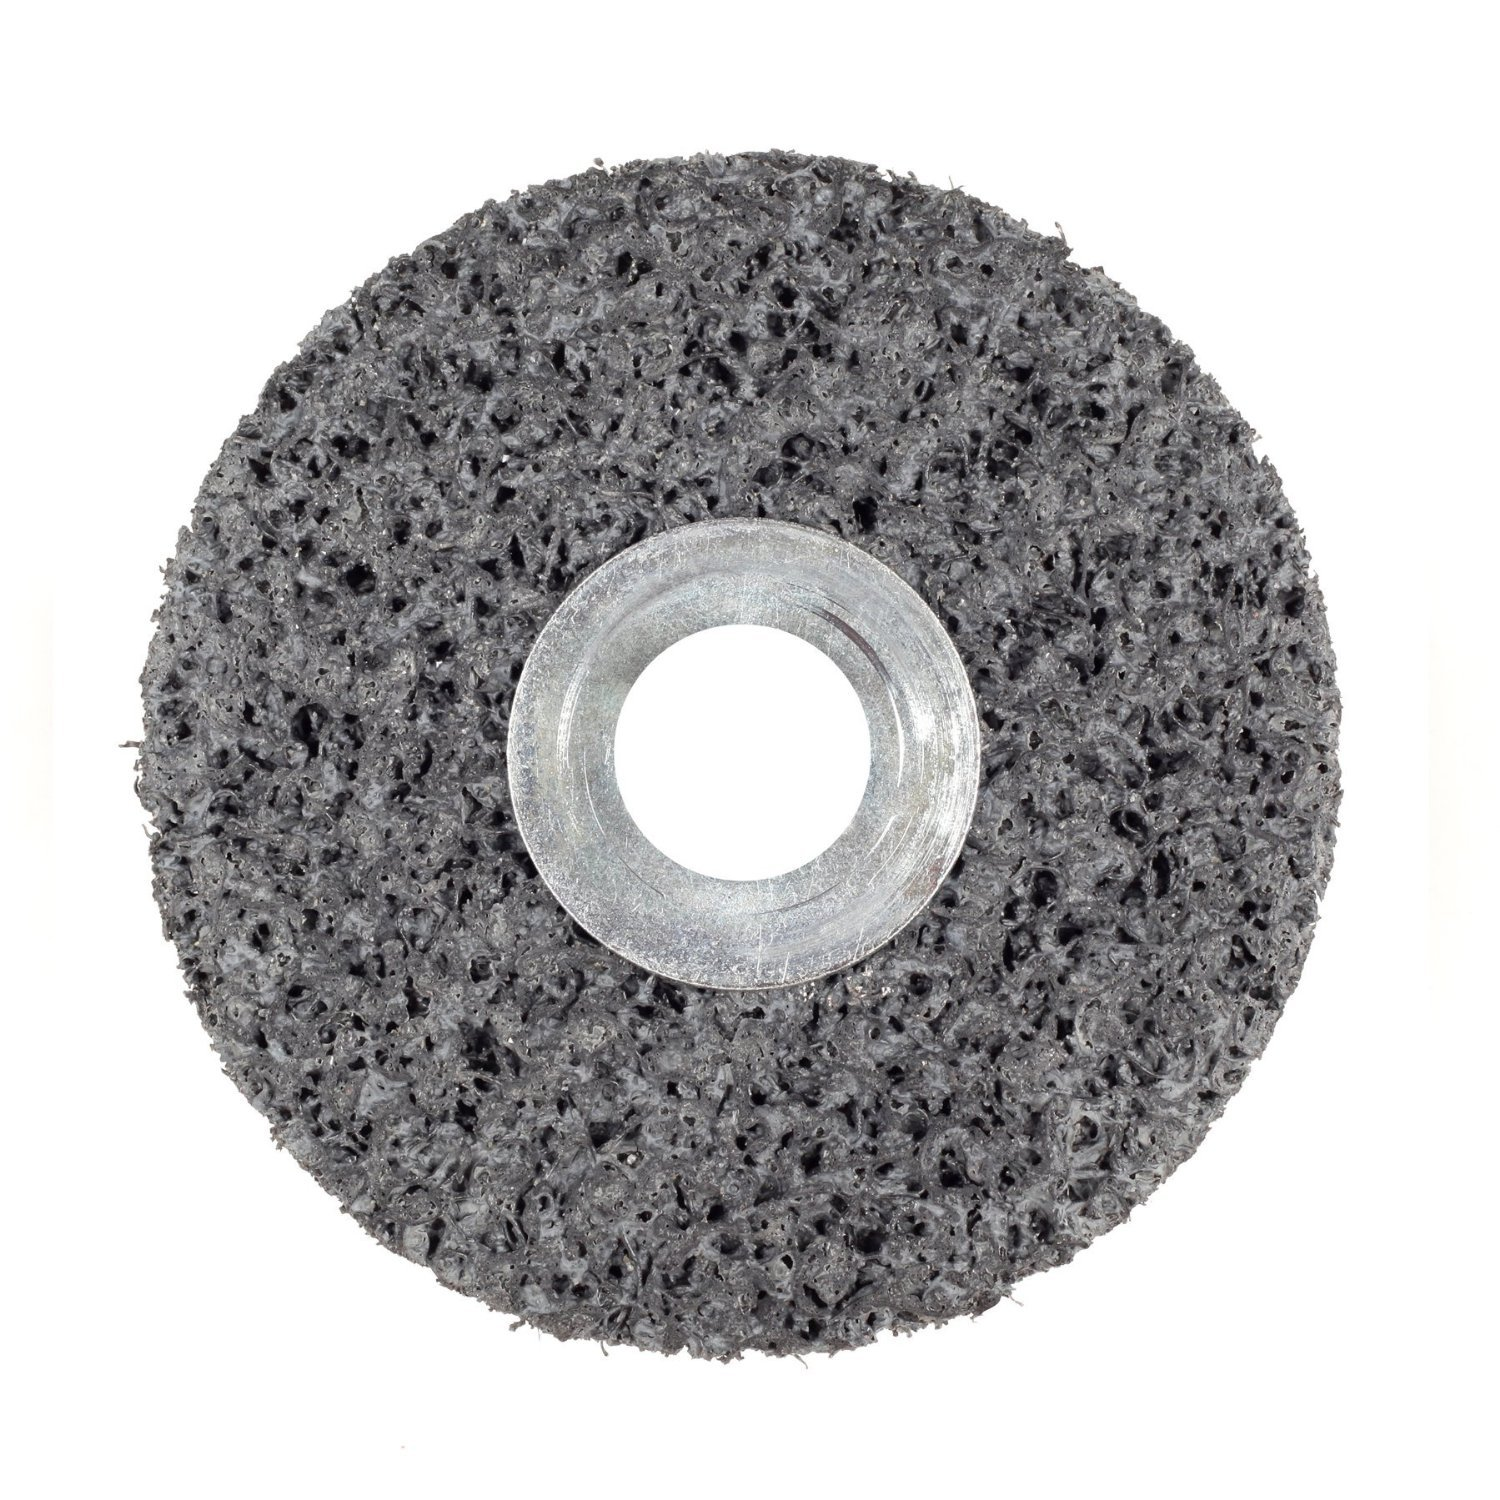 Scotch-Brite(TM) Clean and Strip Unitized Wheel, 7000 rpm, 6 Diameter, 5/8 Arbor, Extra Coarse Grit (Pack of 2) 3M CS-UW